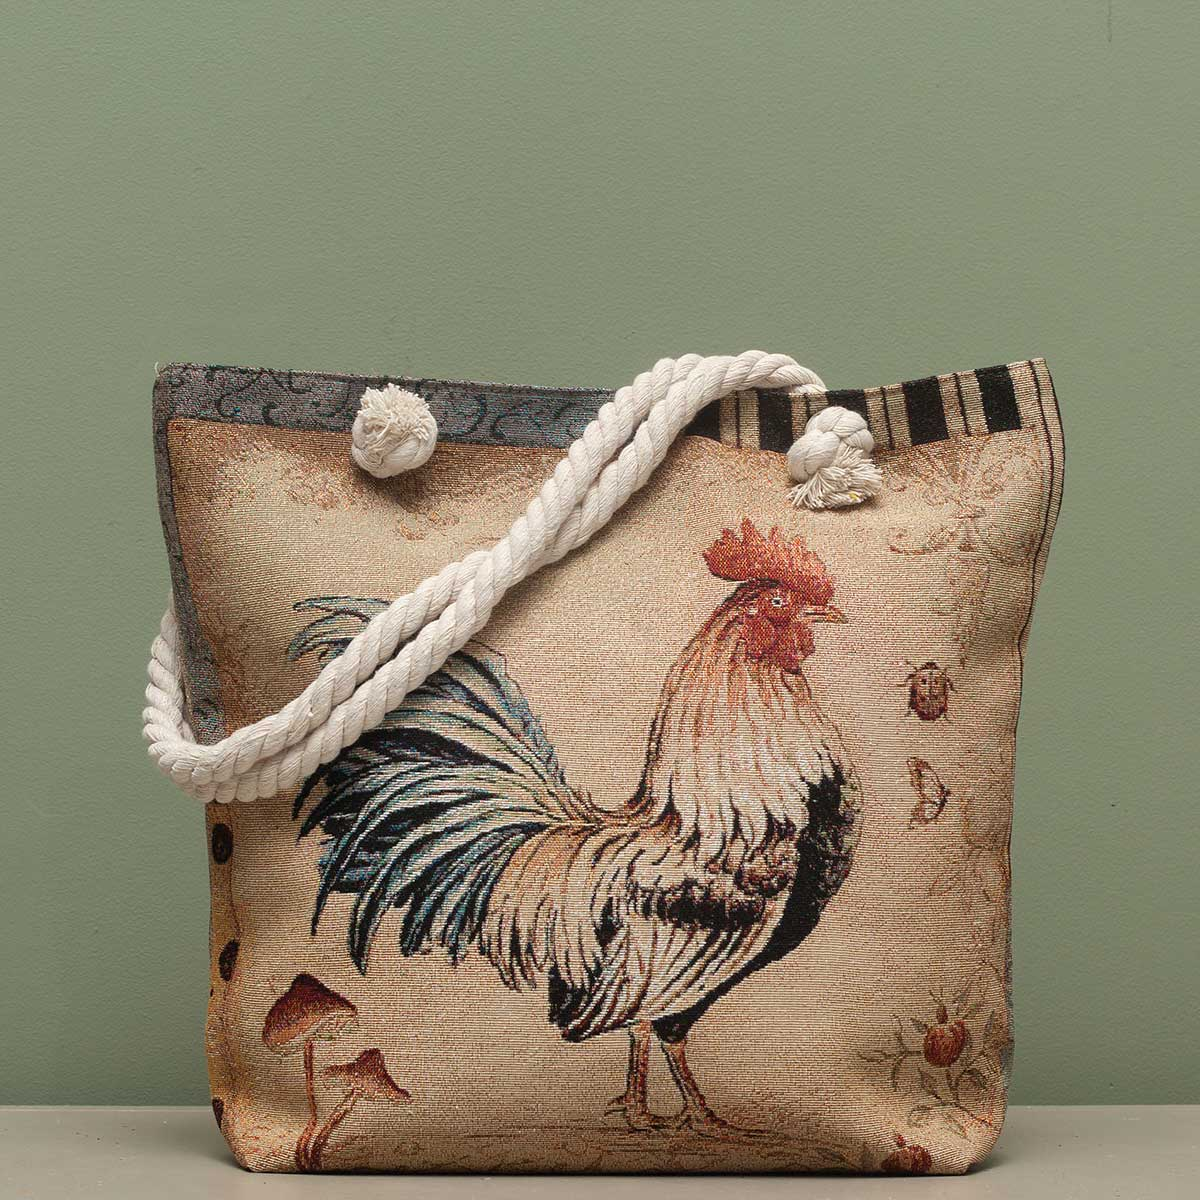 "Rooster Tapestry Bag 17.5""x5""x14"" with 10"" Shoulder Strap, Linin"